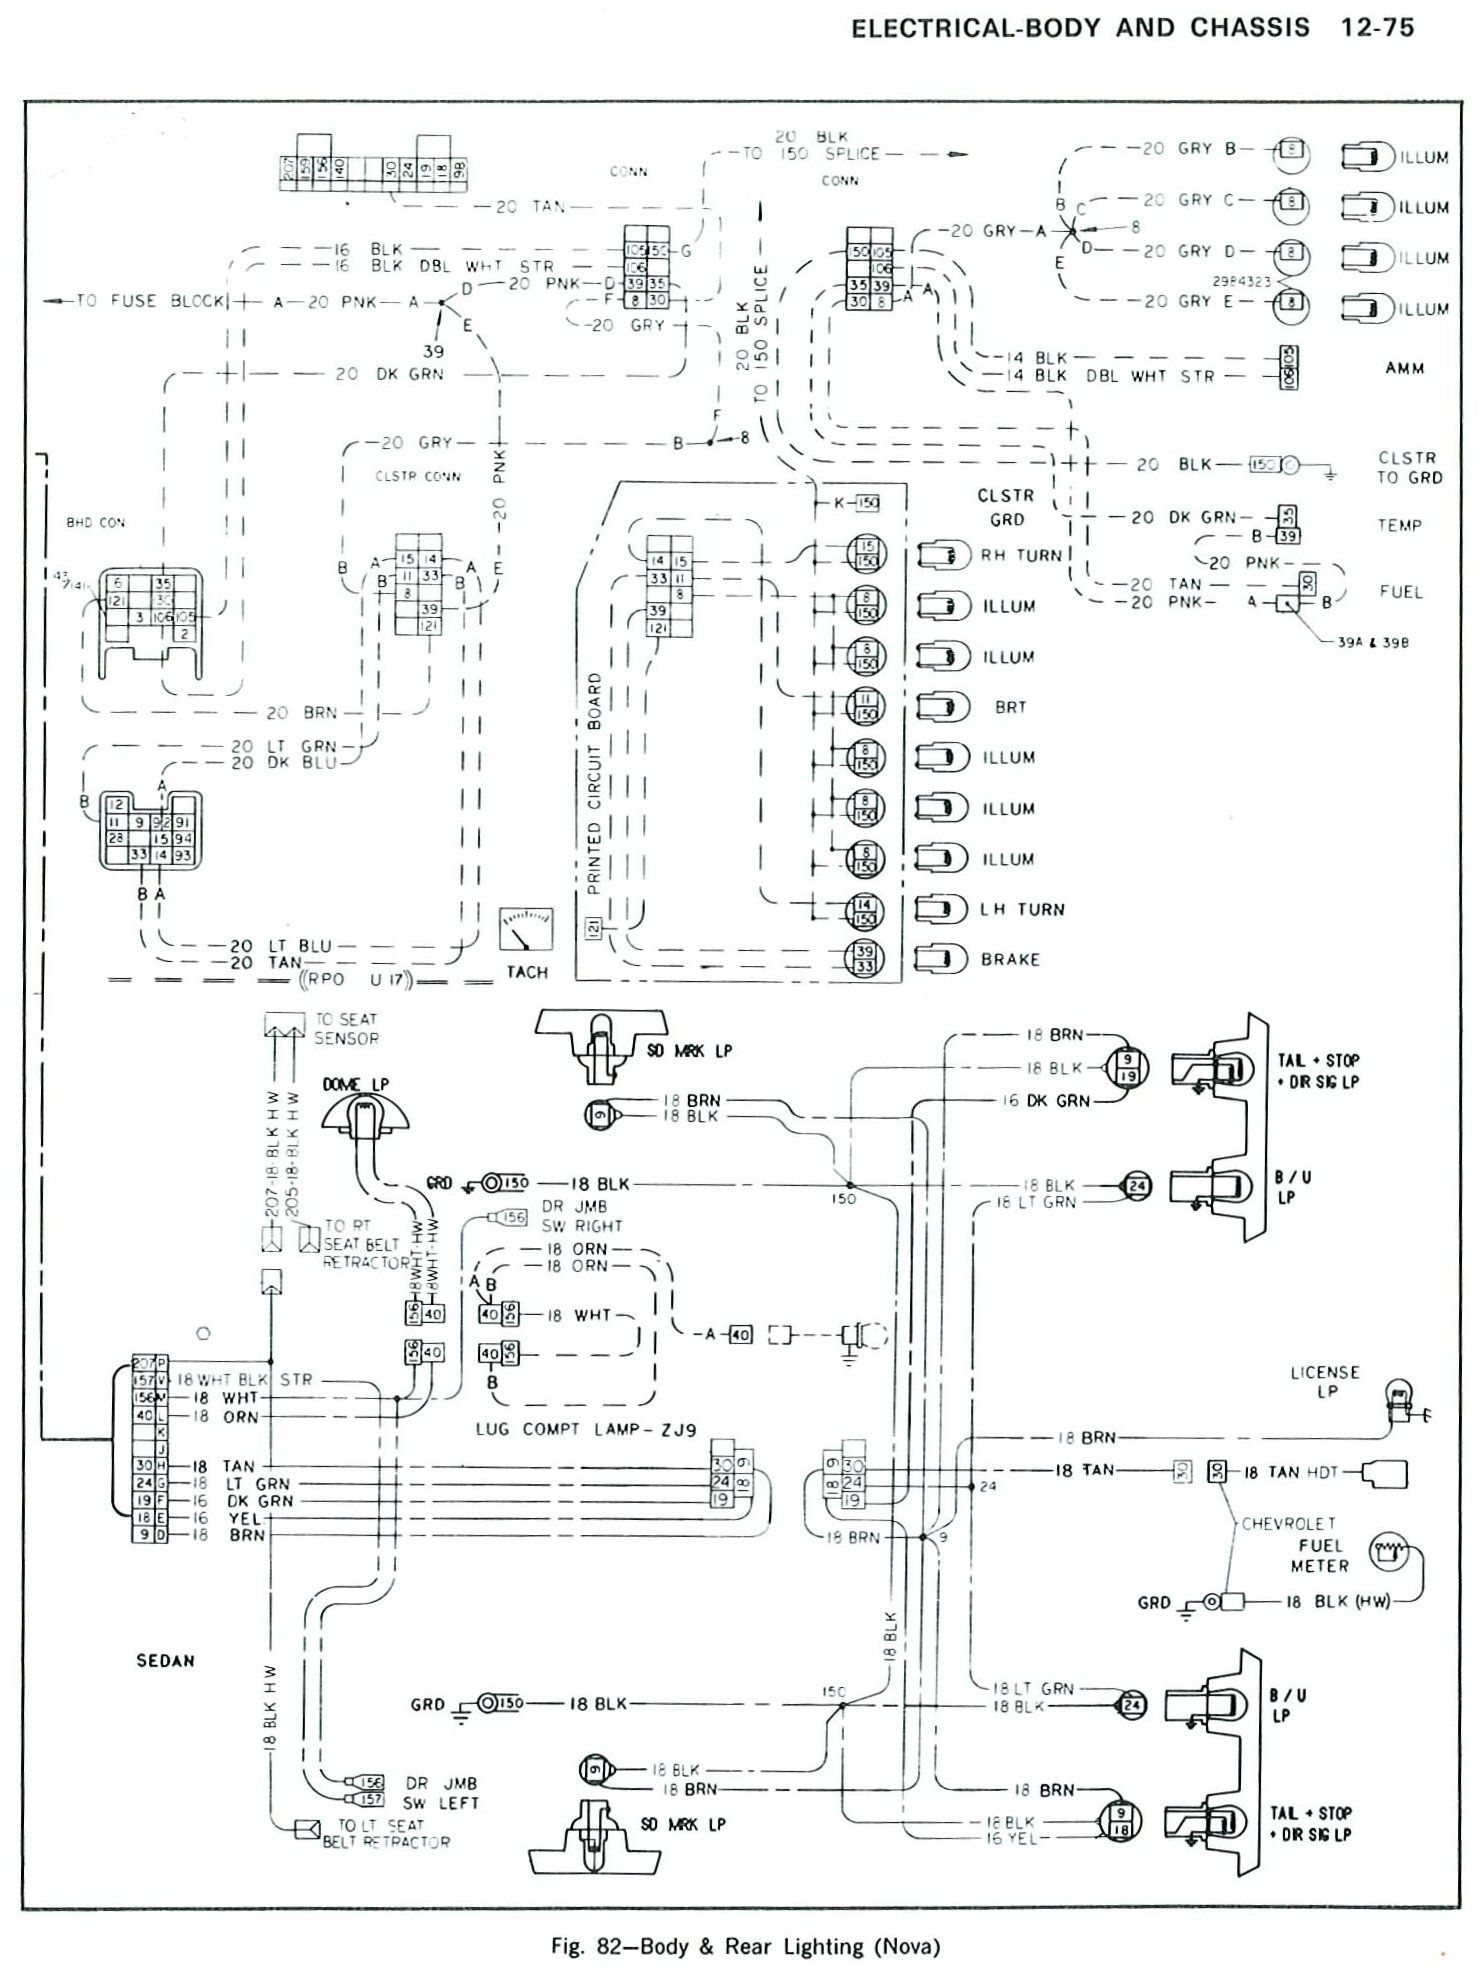 85 chevy truck wiring diagram looking at the wiring diagram on the electrical forum click here [ 1482 x 1974 Pixel ]